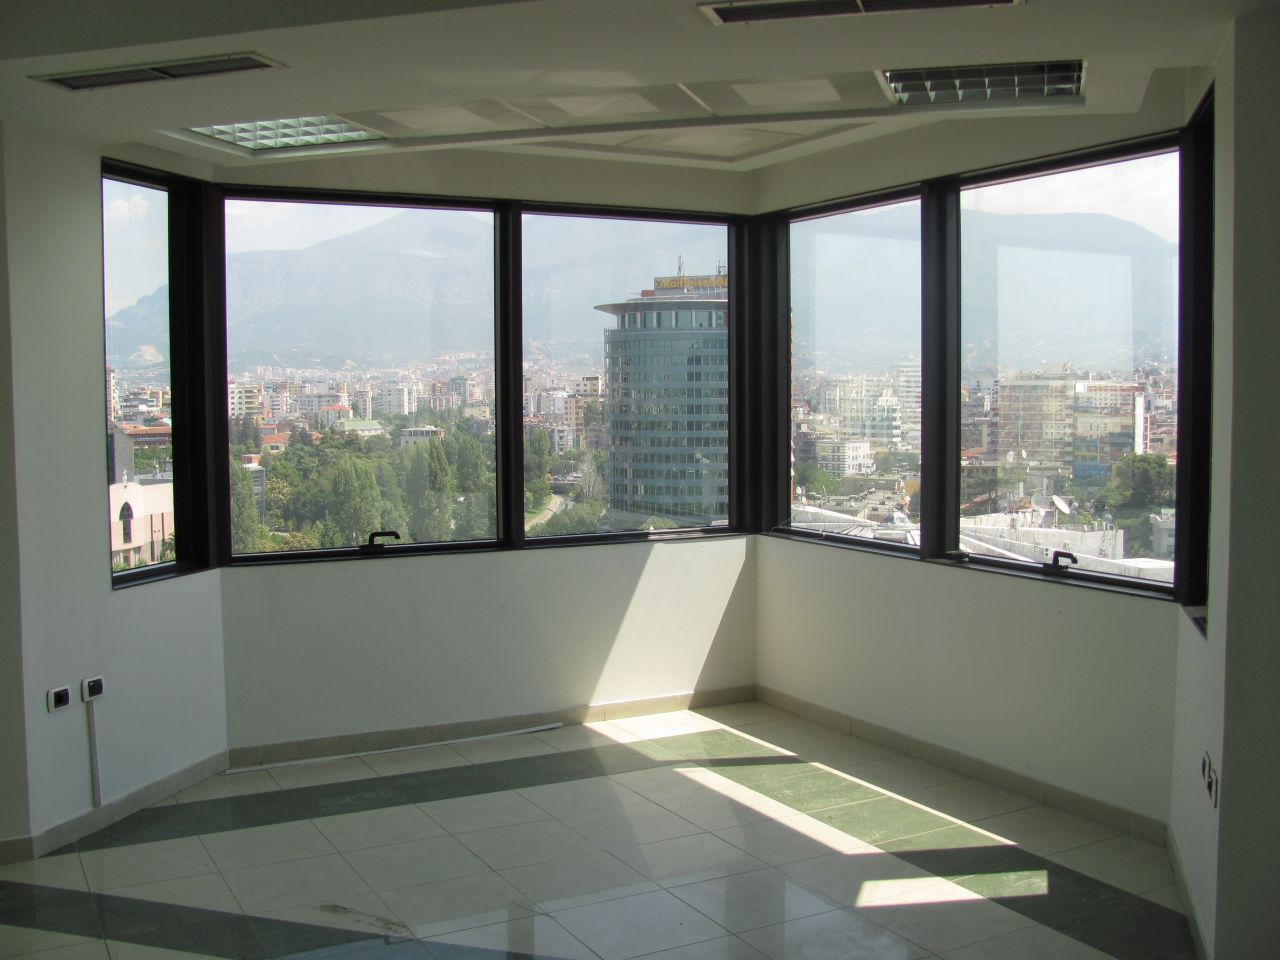 Office for Rent in Tirane. Albania Real Estate for Rent